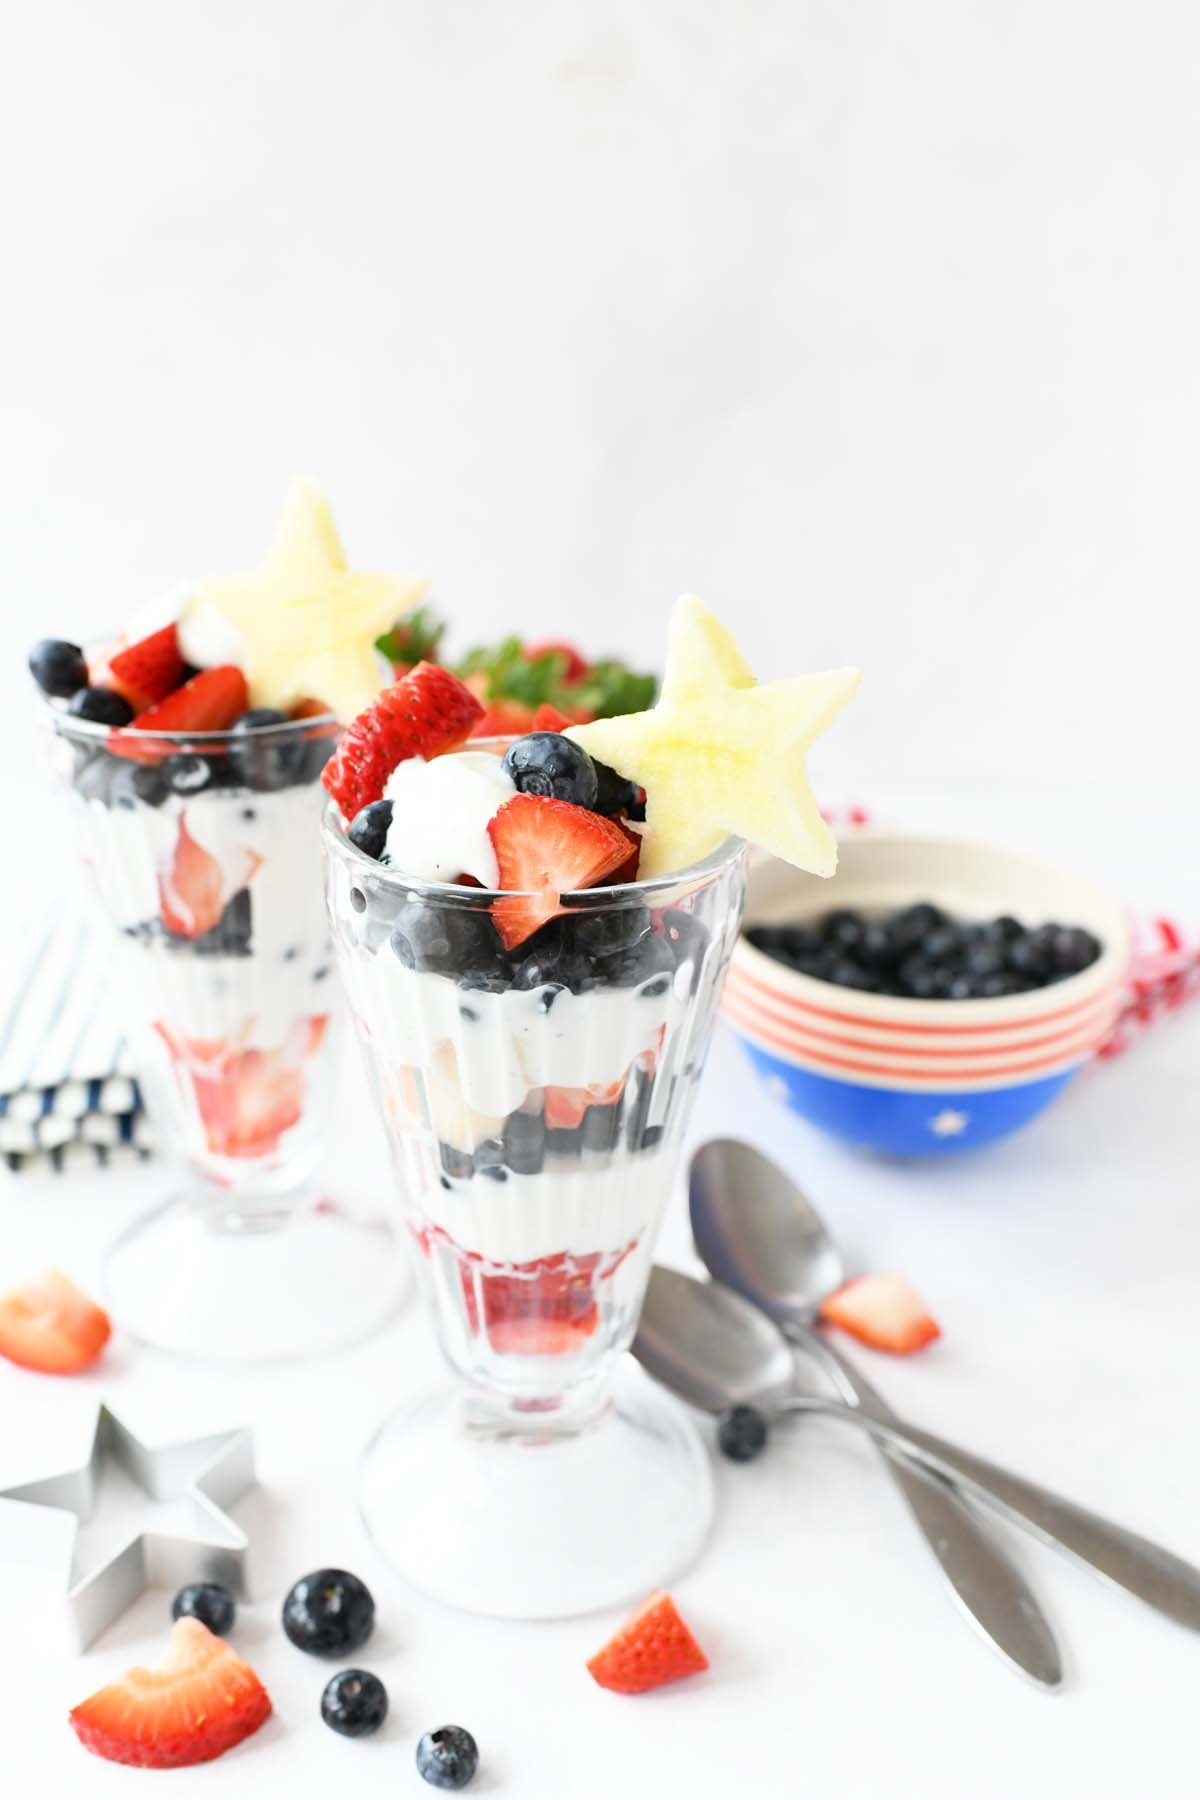 Patriotic Fruit Parfaits with berries, and apple star toppers.